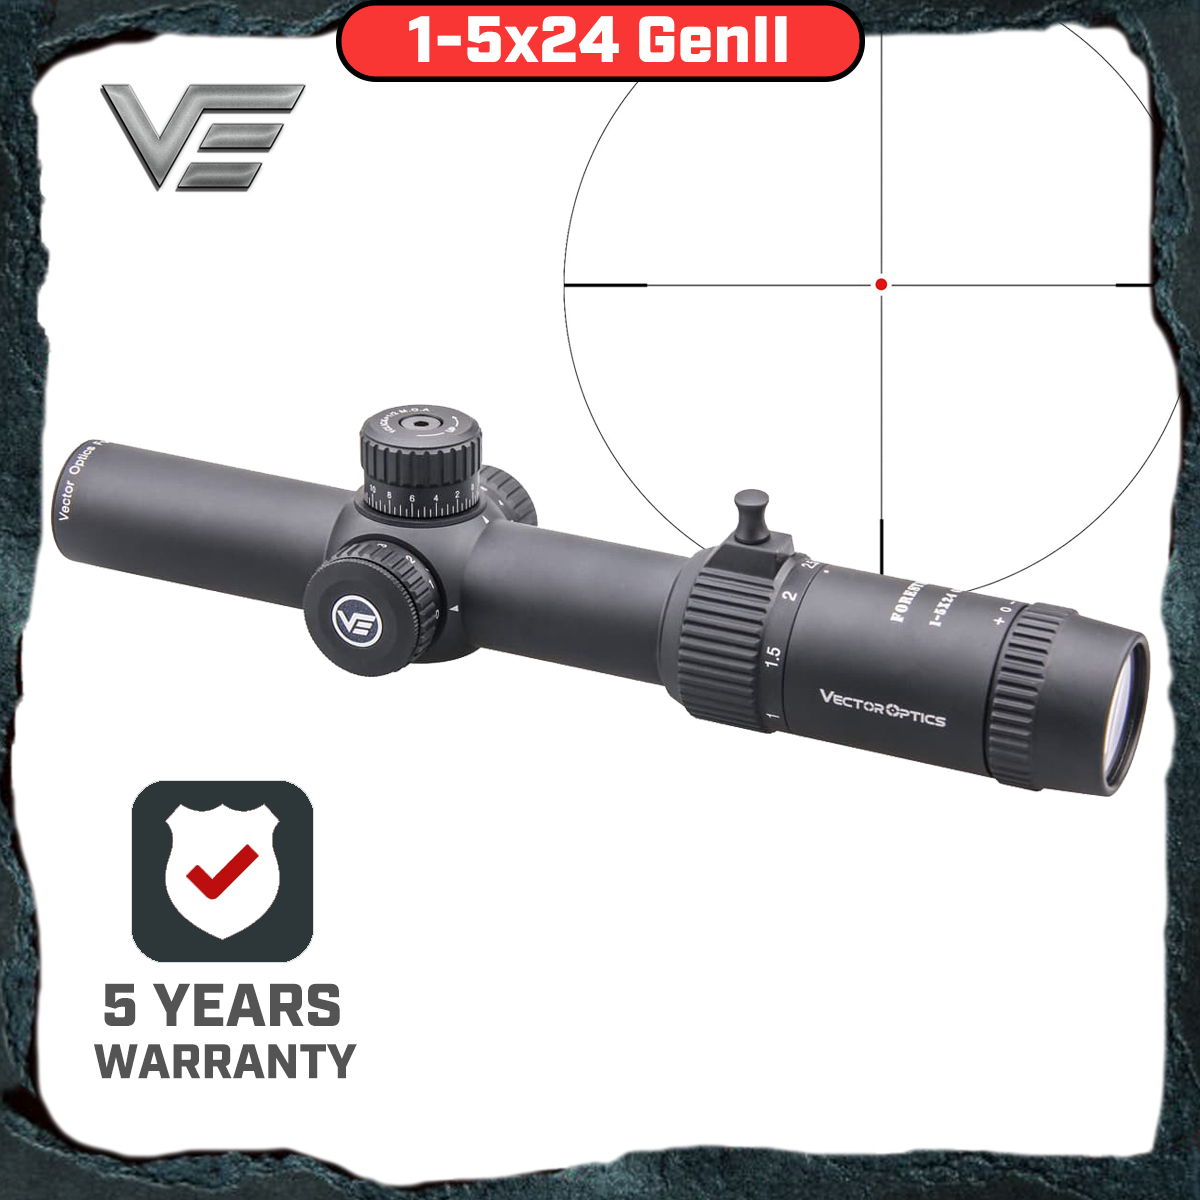 Vector Optics GenII Forester 1-5x24 Riflescope Center Dot Illuminated Air Soft Scope Hunting Rifle Scope Air Gun AR15 Scope